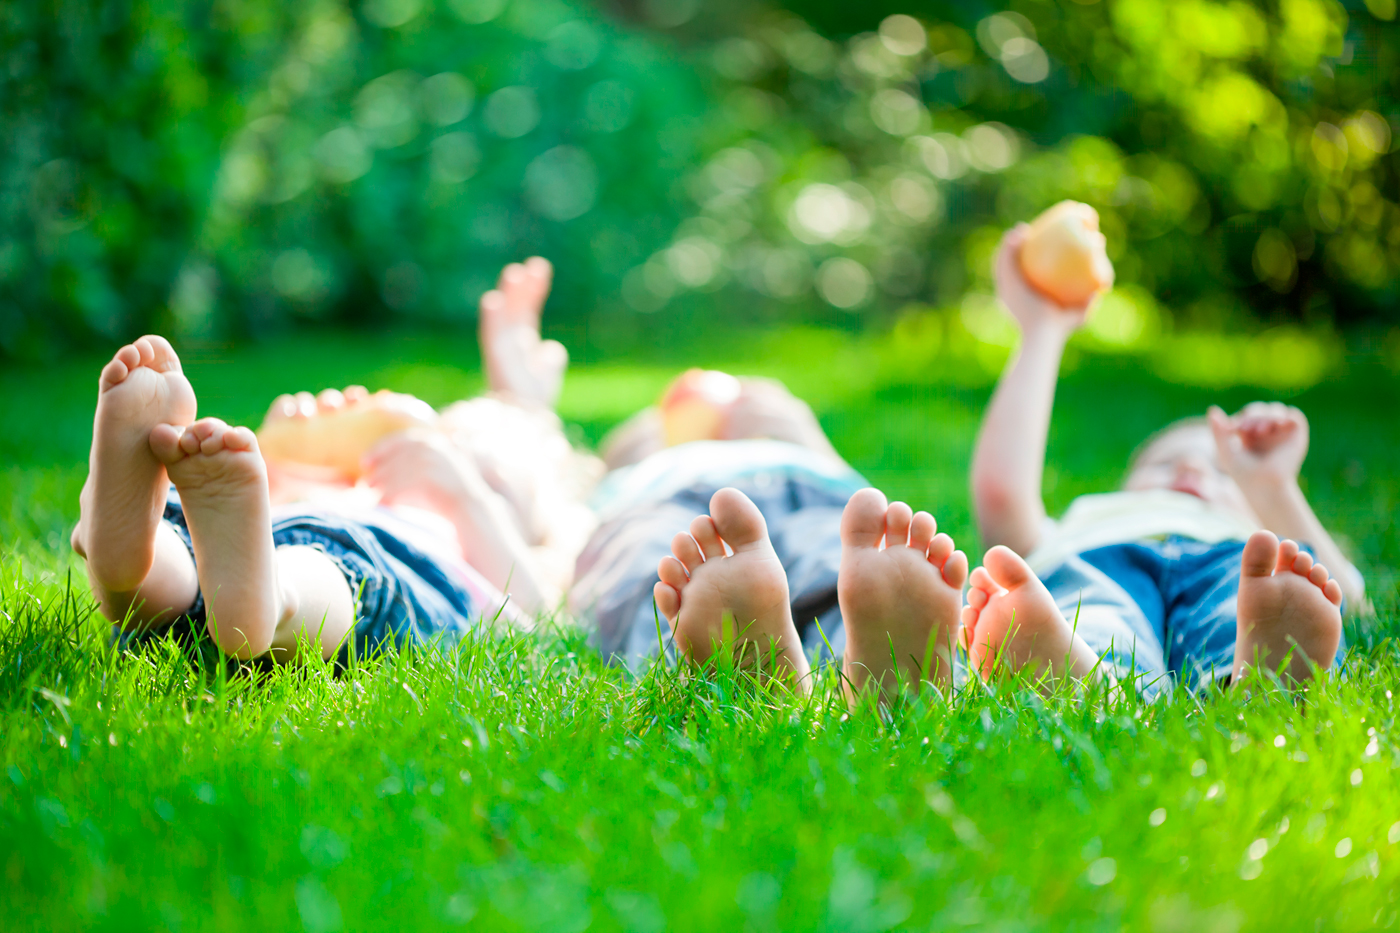 Charlotte NC | Lawn Care Services by Pine Valley Turf